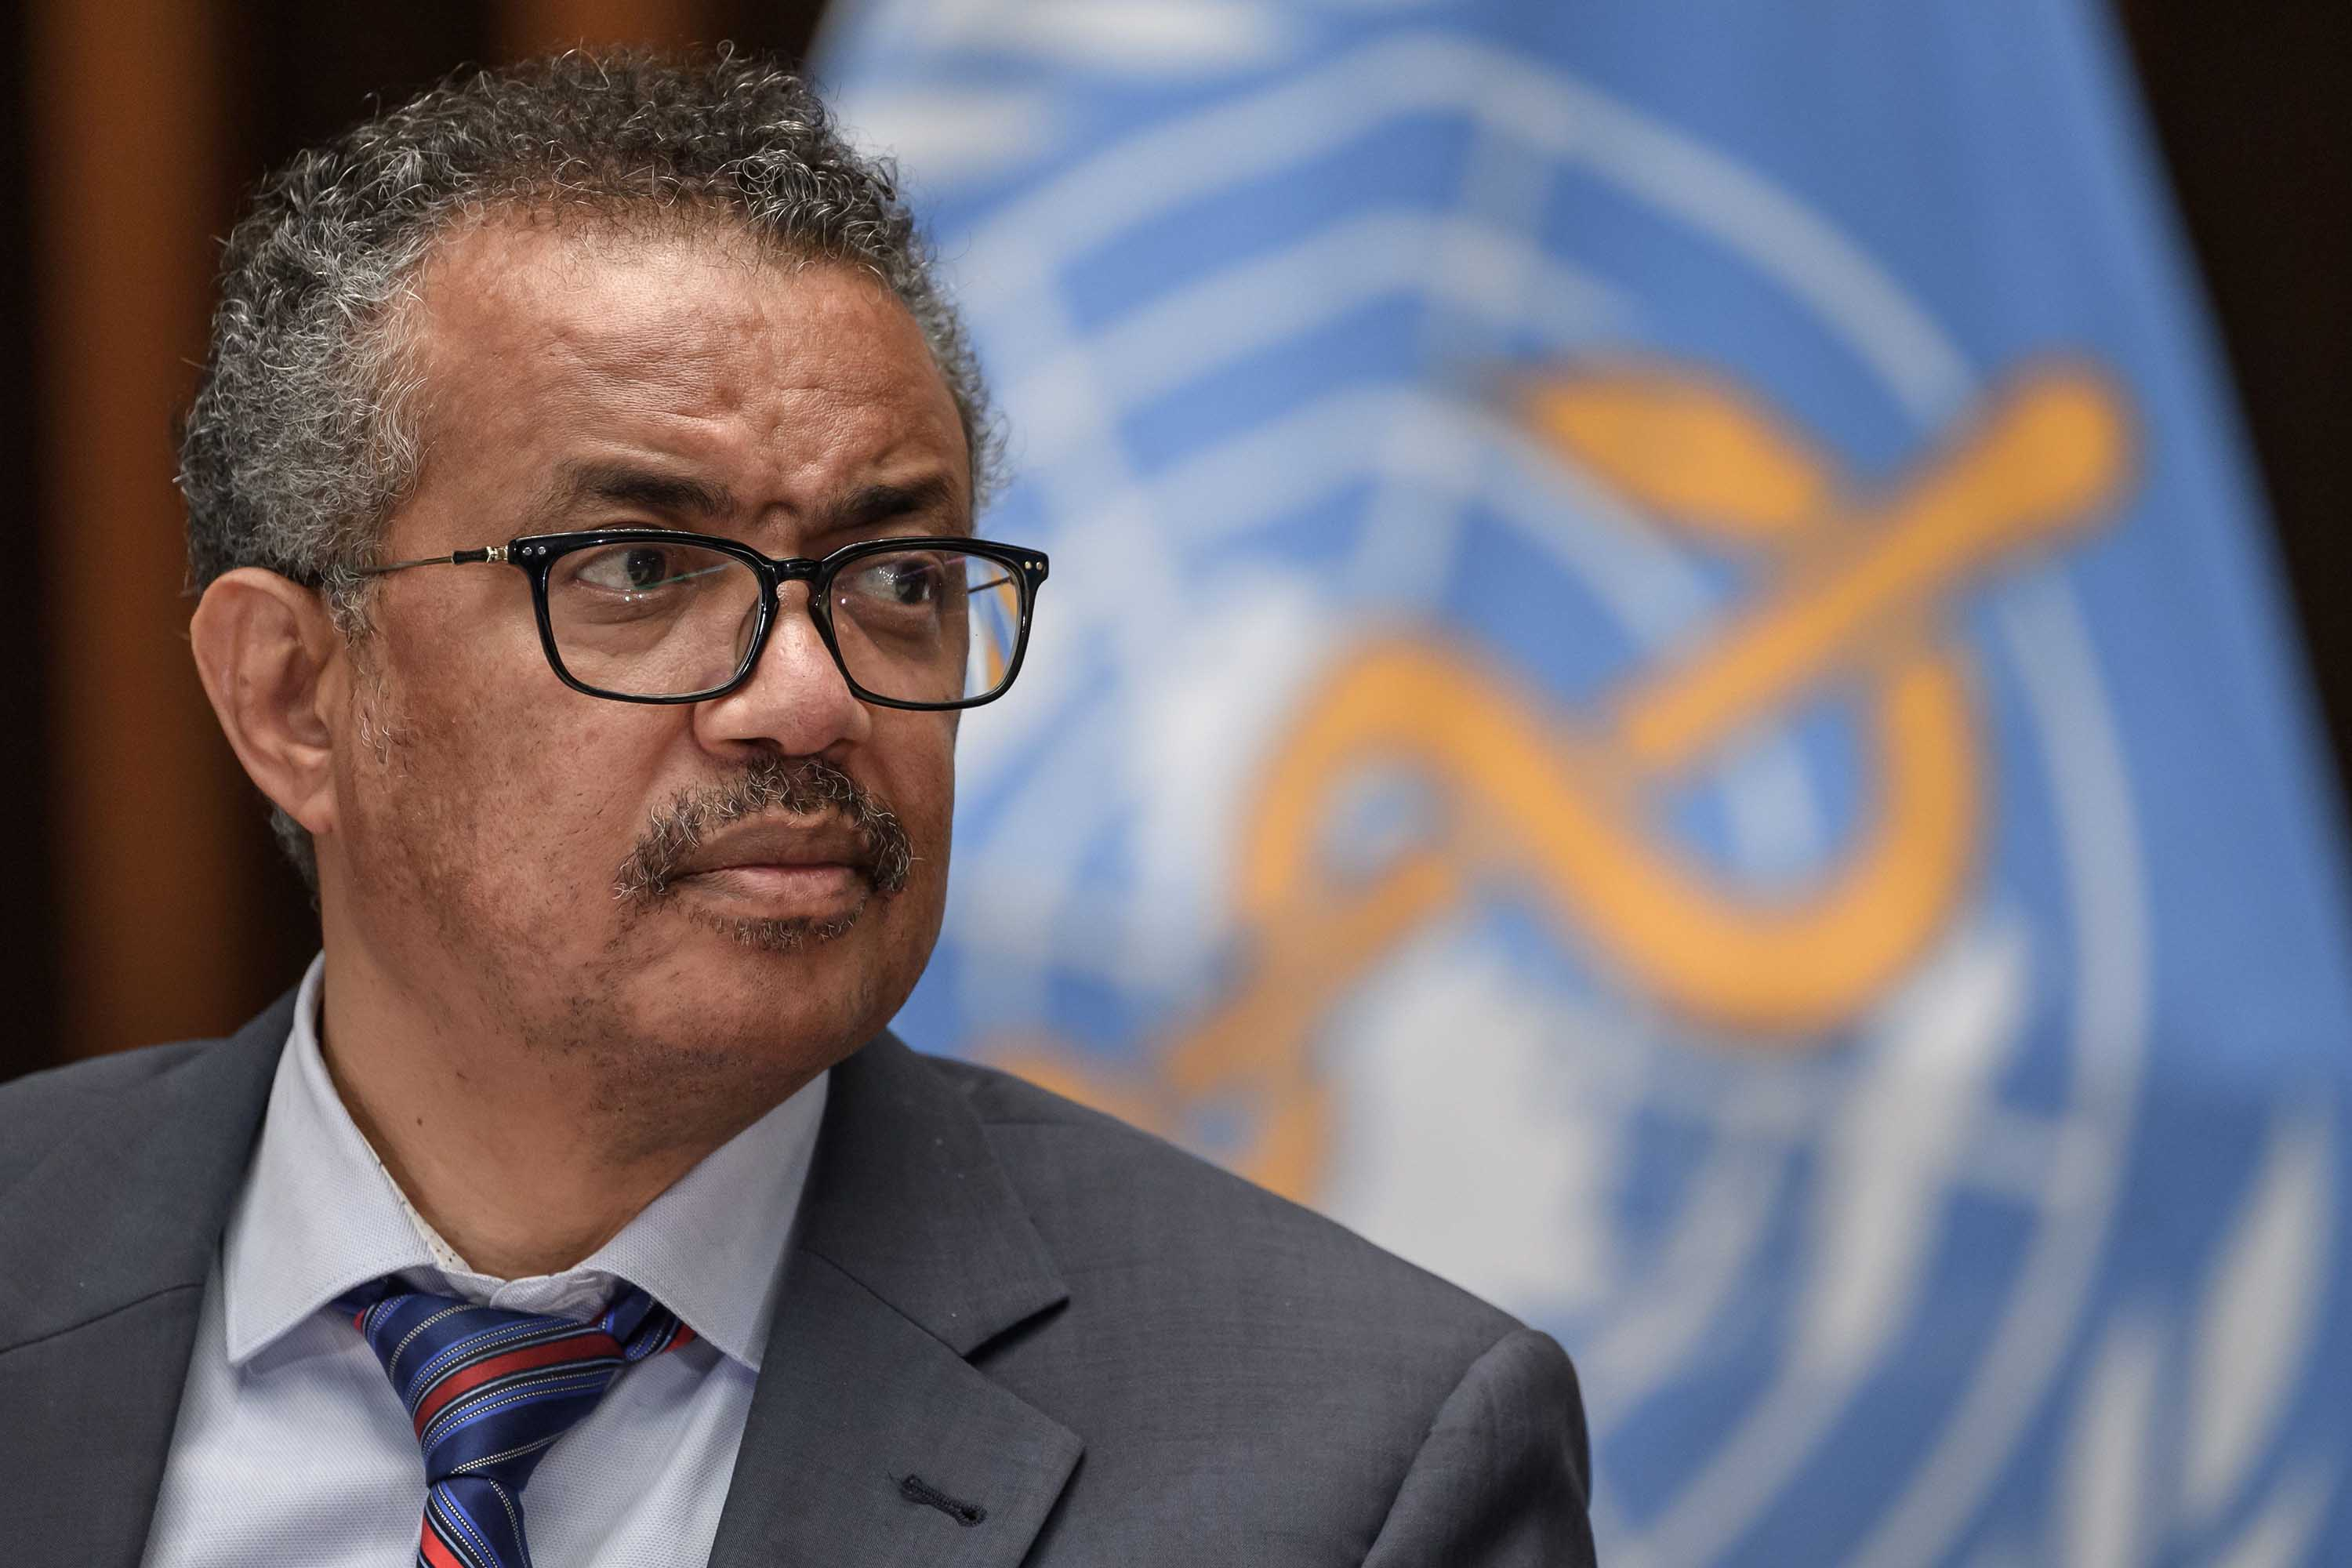 World Health Organization (WHO) Director-General Tedros Adhanom Ghebreyesus is pictured at a press conference in Geneva, Switzerland, in July 2020.